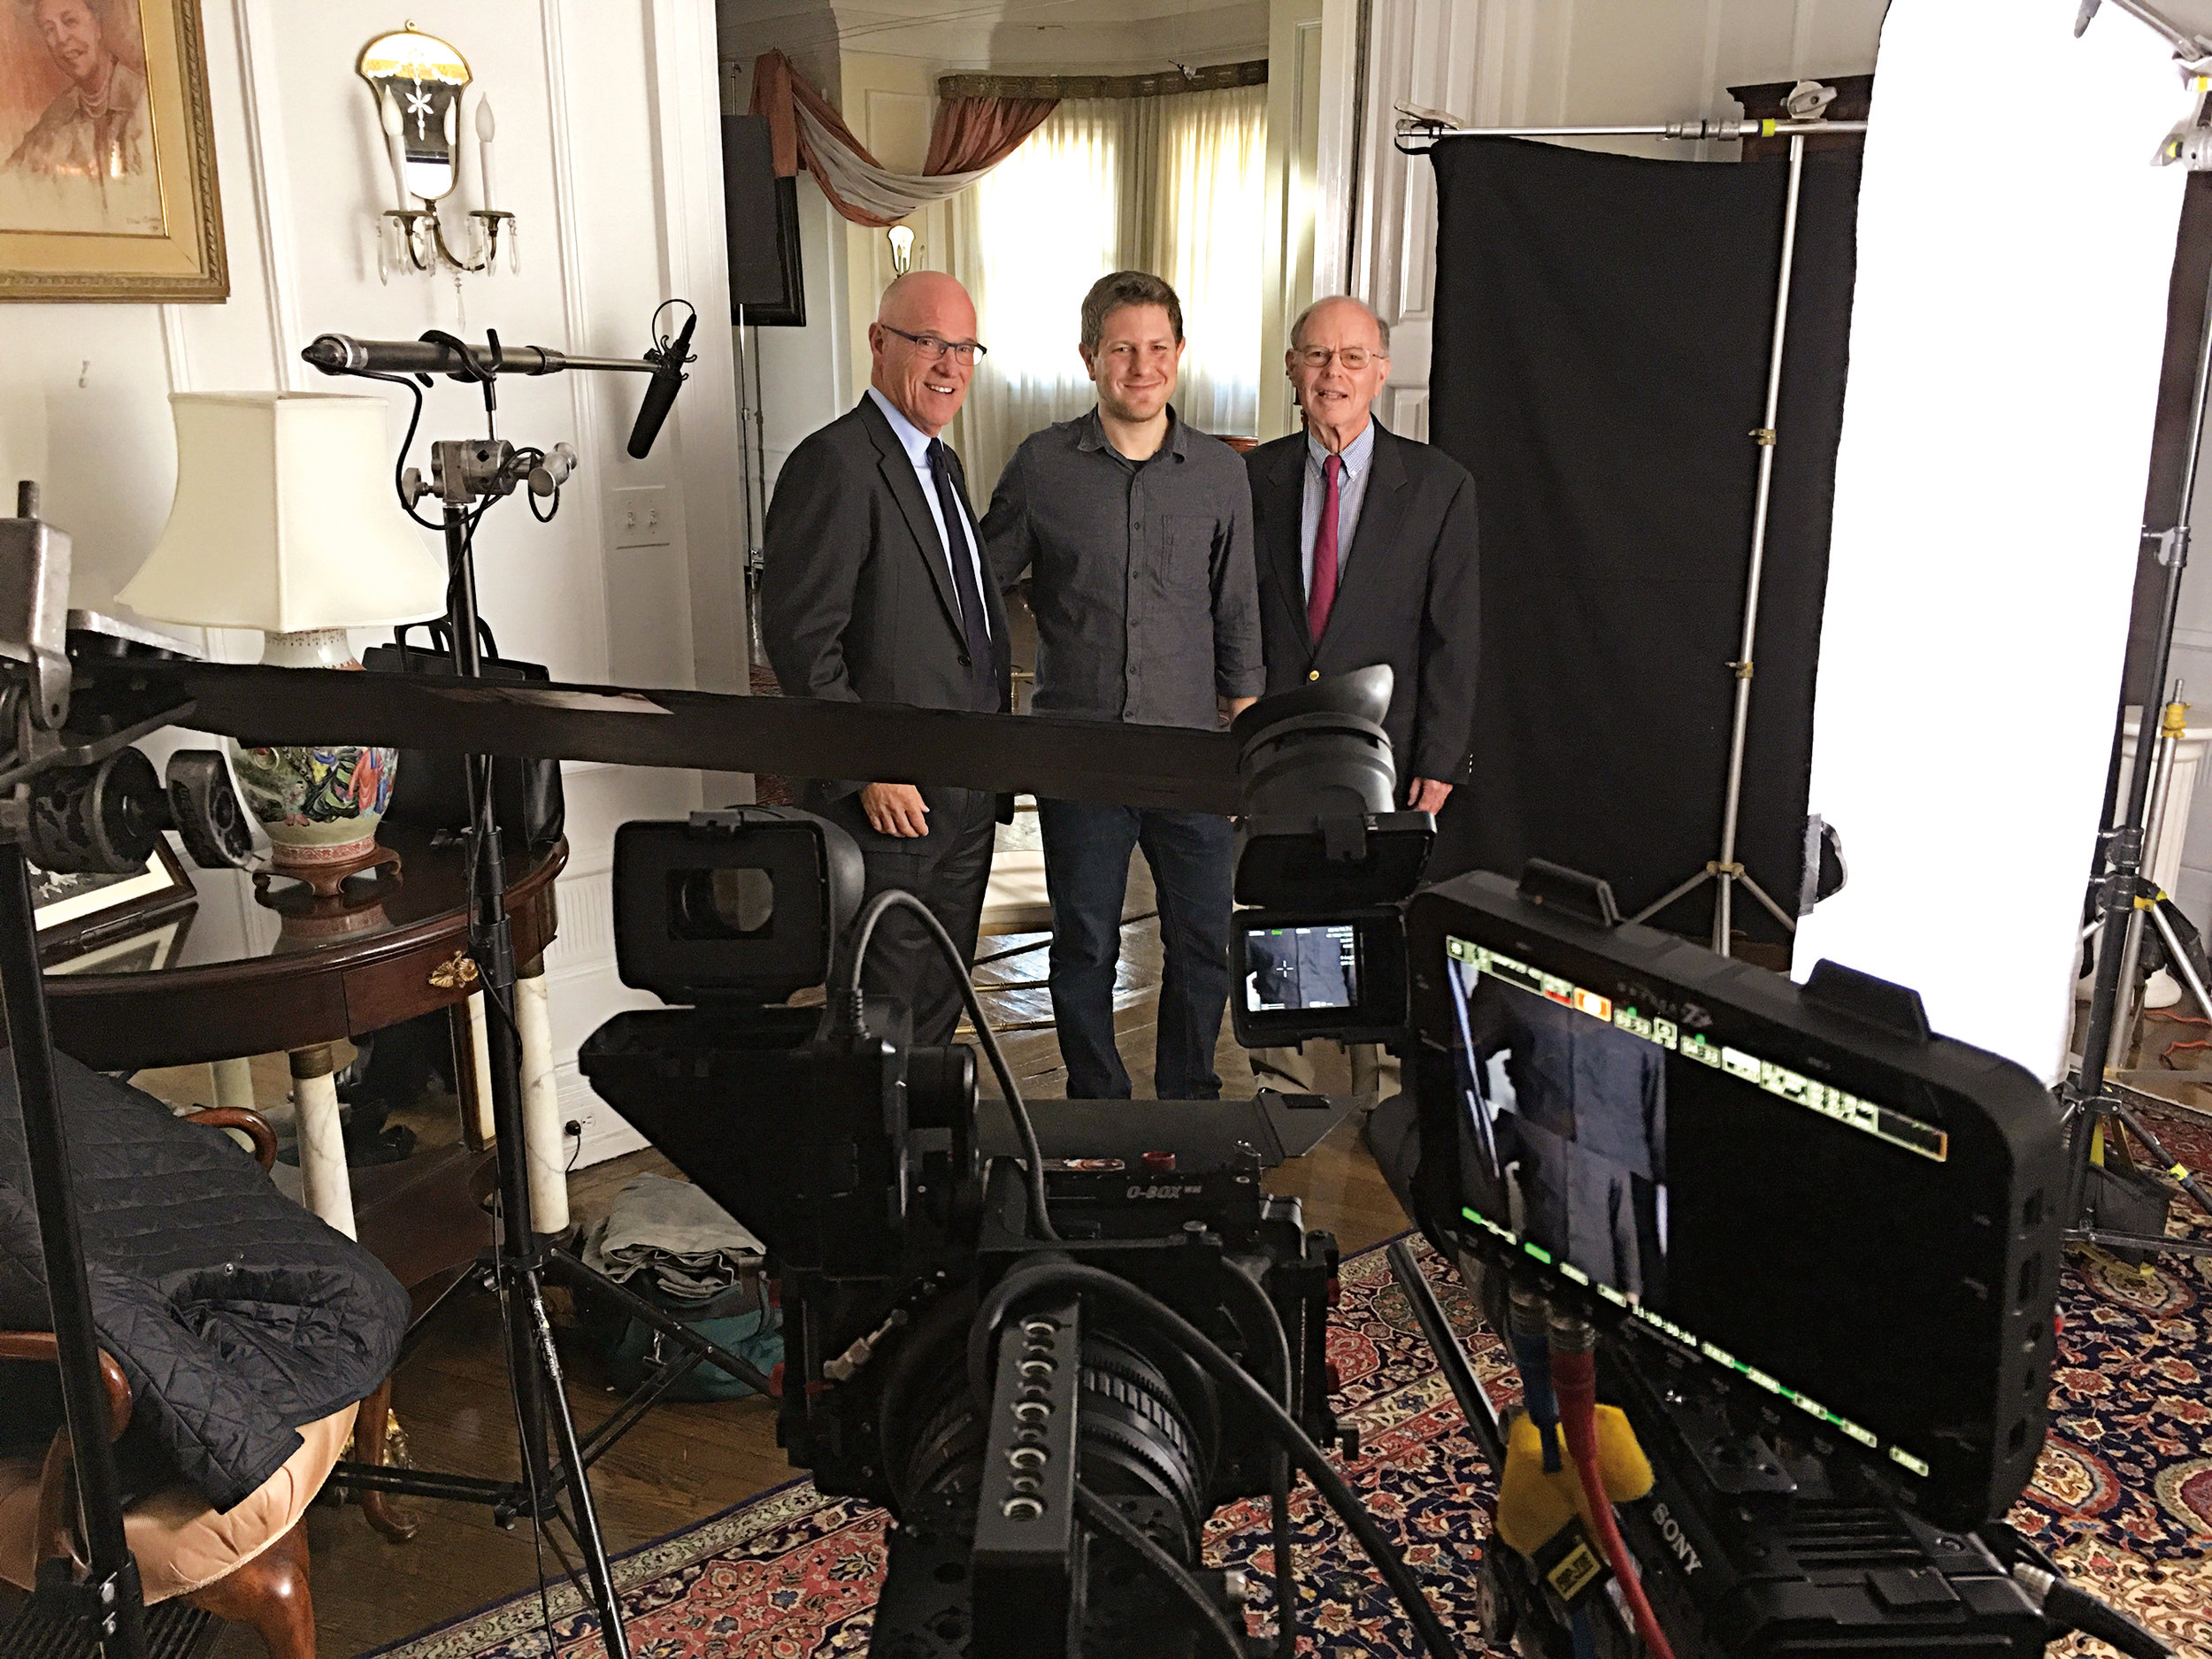 Haven Pell '64 (l.) and Bill Matthews '61 (r.) were interviewed by Mike Schultz, a producer with NBC Universal, for a documentary on Special Counsel Robert Mueller '62.